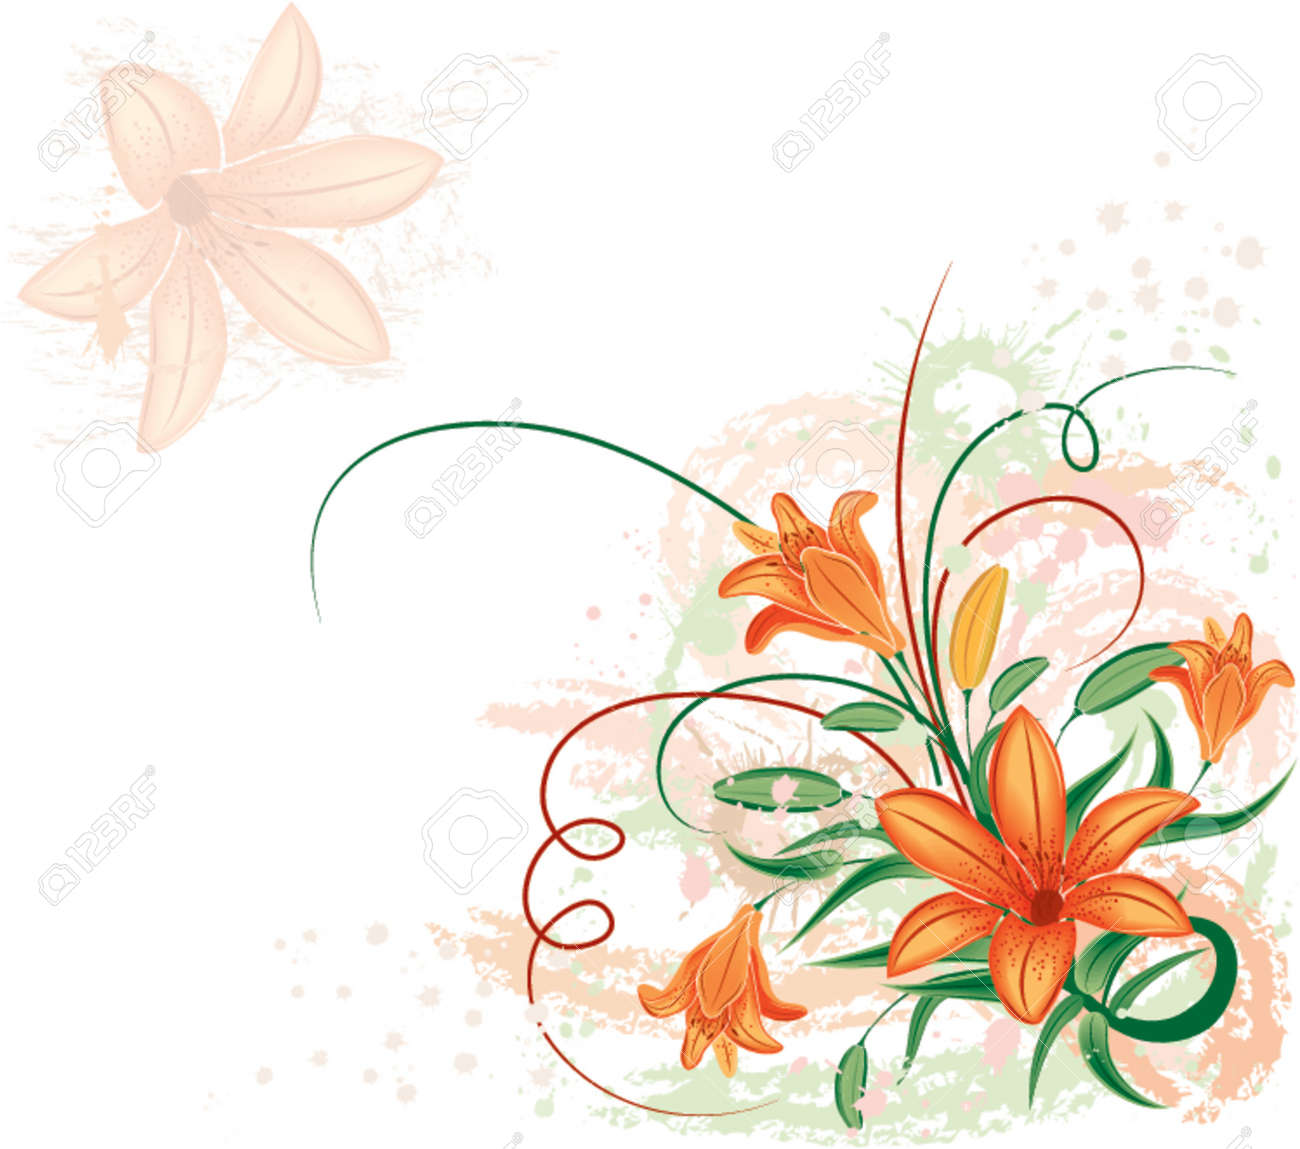 Grunge floral background with lilium, vector illustration Stock Vector - 654406